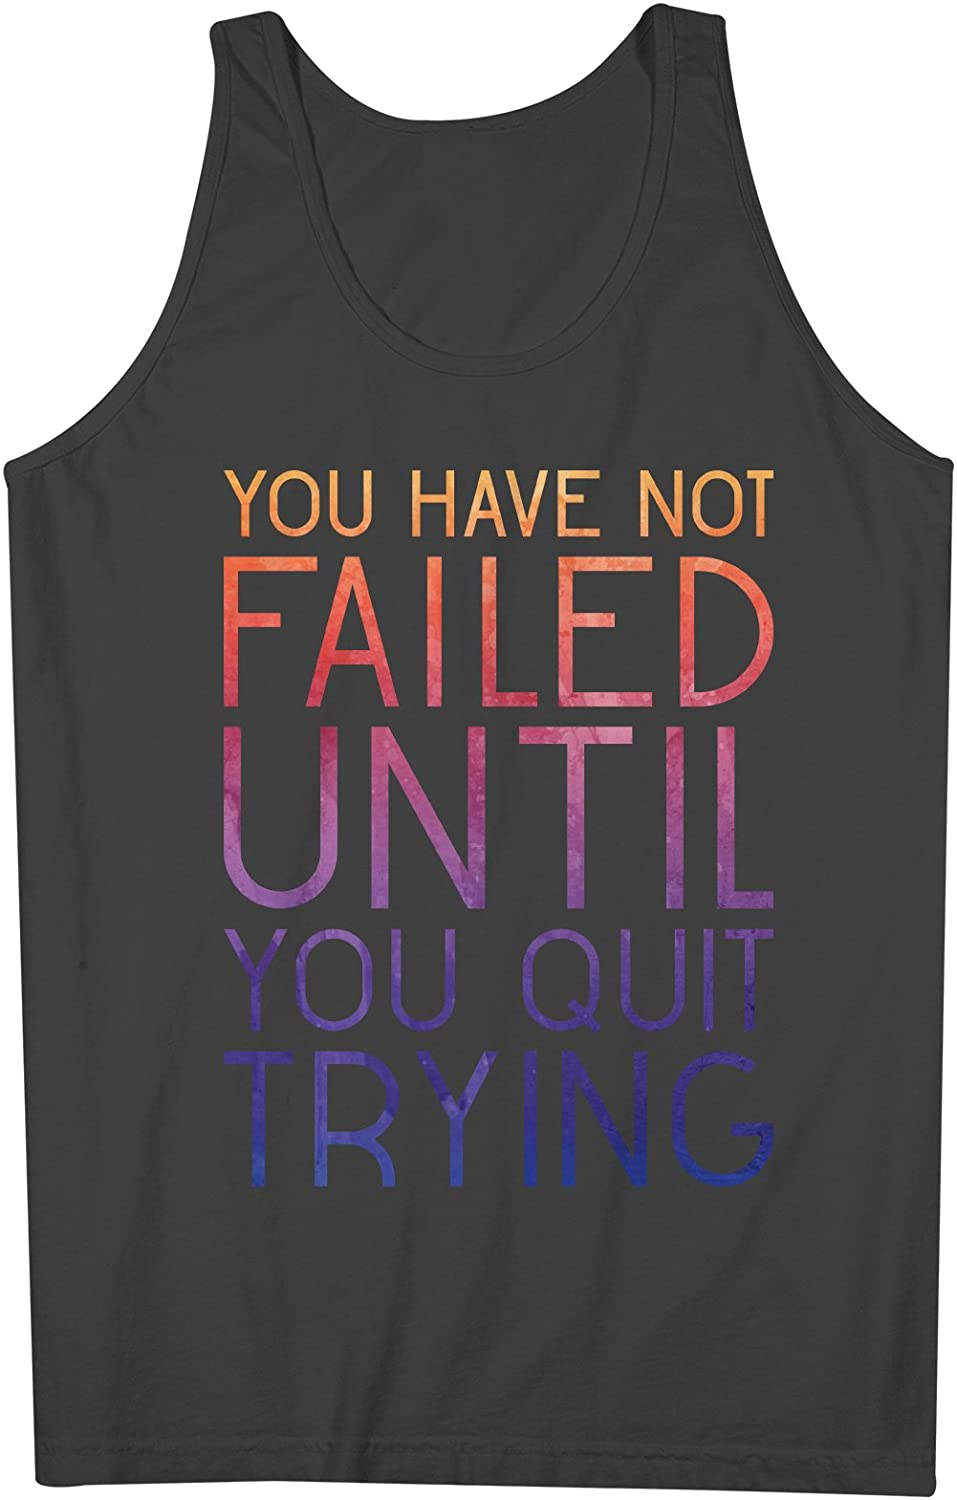 You Have Not Failed Until You Quit Trying Inspiration Motivation 男性用 Tank Top Sleeveless Shirt